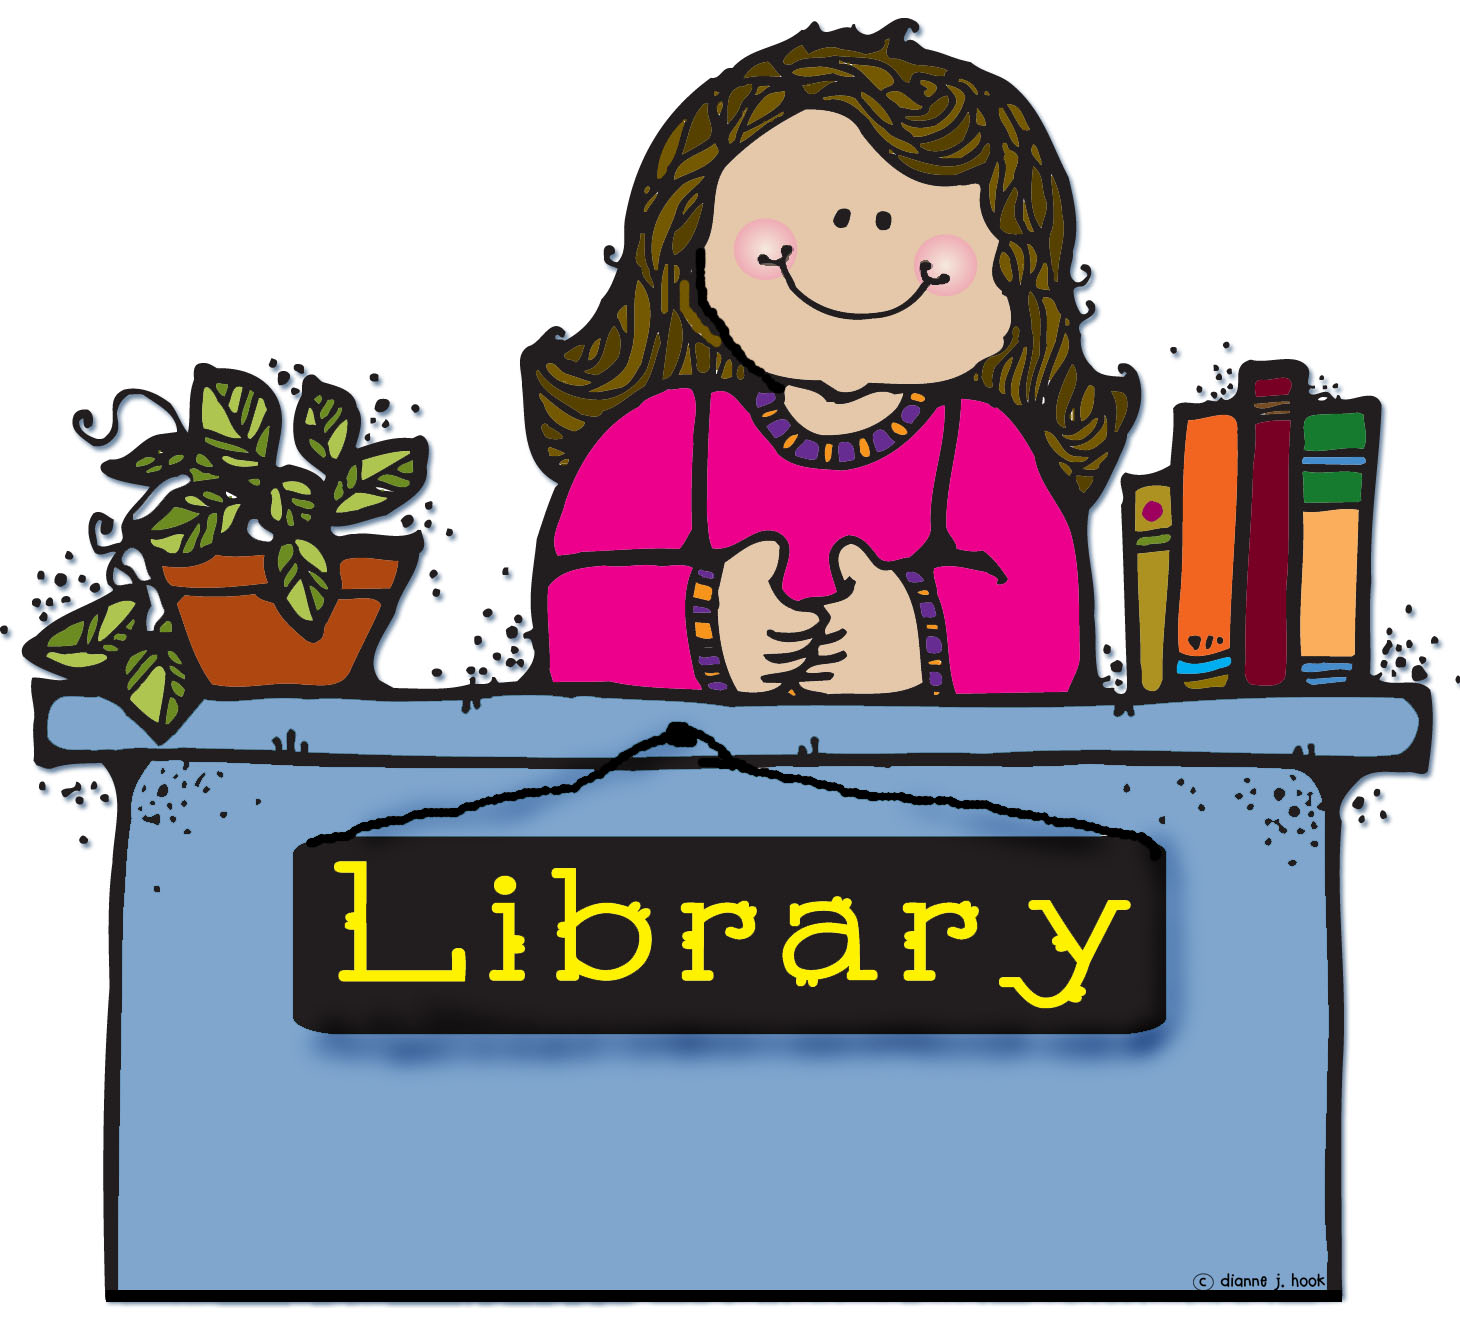 Librariam clipart clipart library stock 75+ Librarian Clipart | ClipartLook clipart library stock